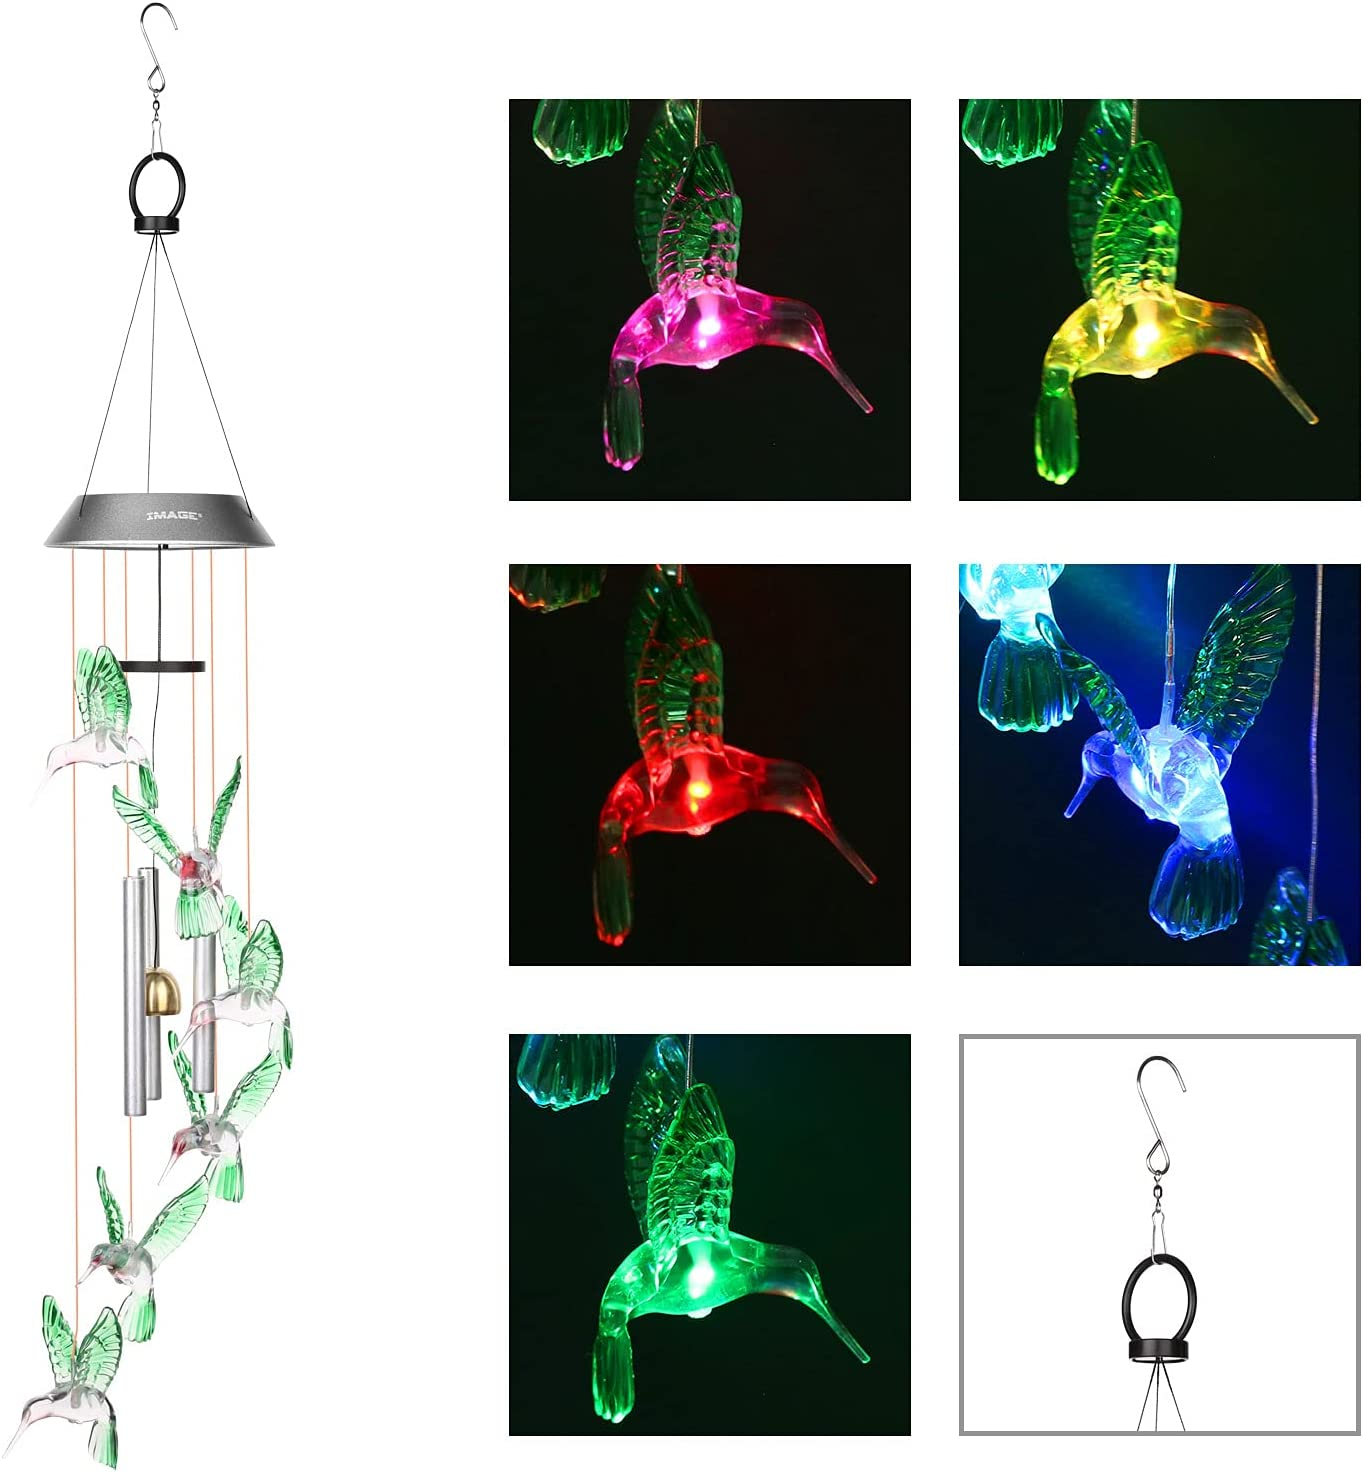 Wind Chimes Solar Hummingbird Wind Chime with Metal Tubes Color Changing Lights Outdoor Solar Lights Hanging Decorative Garden Lights Xmas Gifts for Decor Home Garden Patio Yard Indoor Outdoor